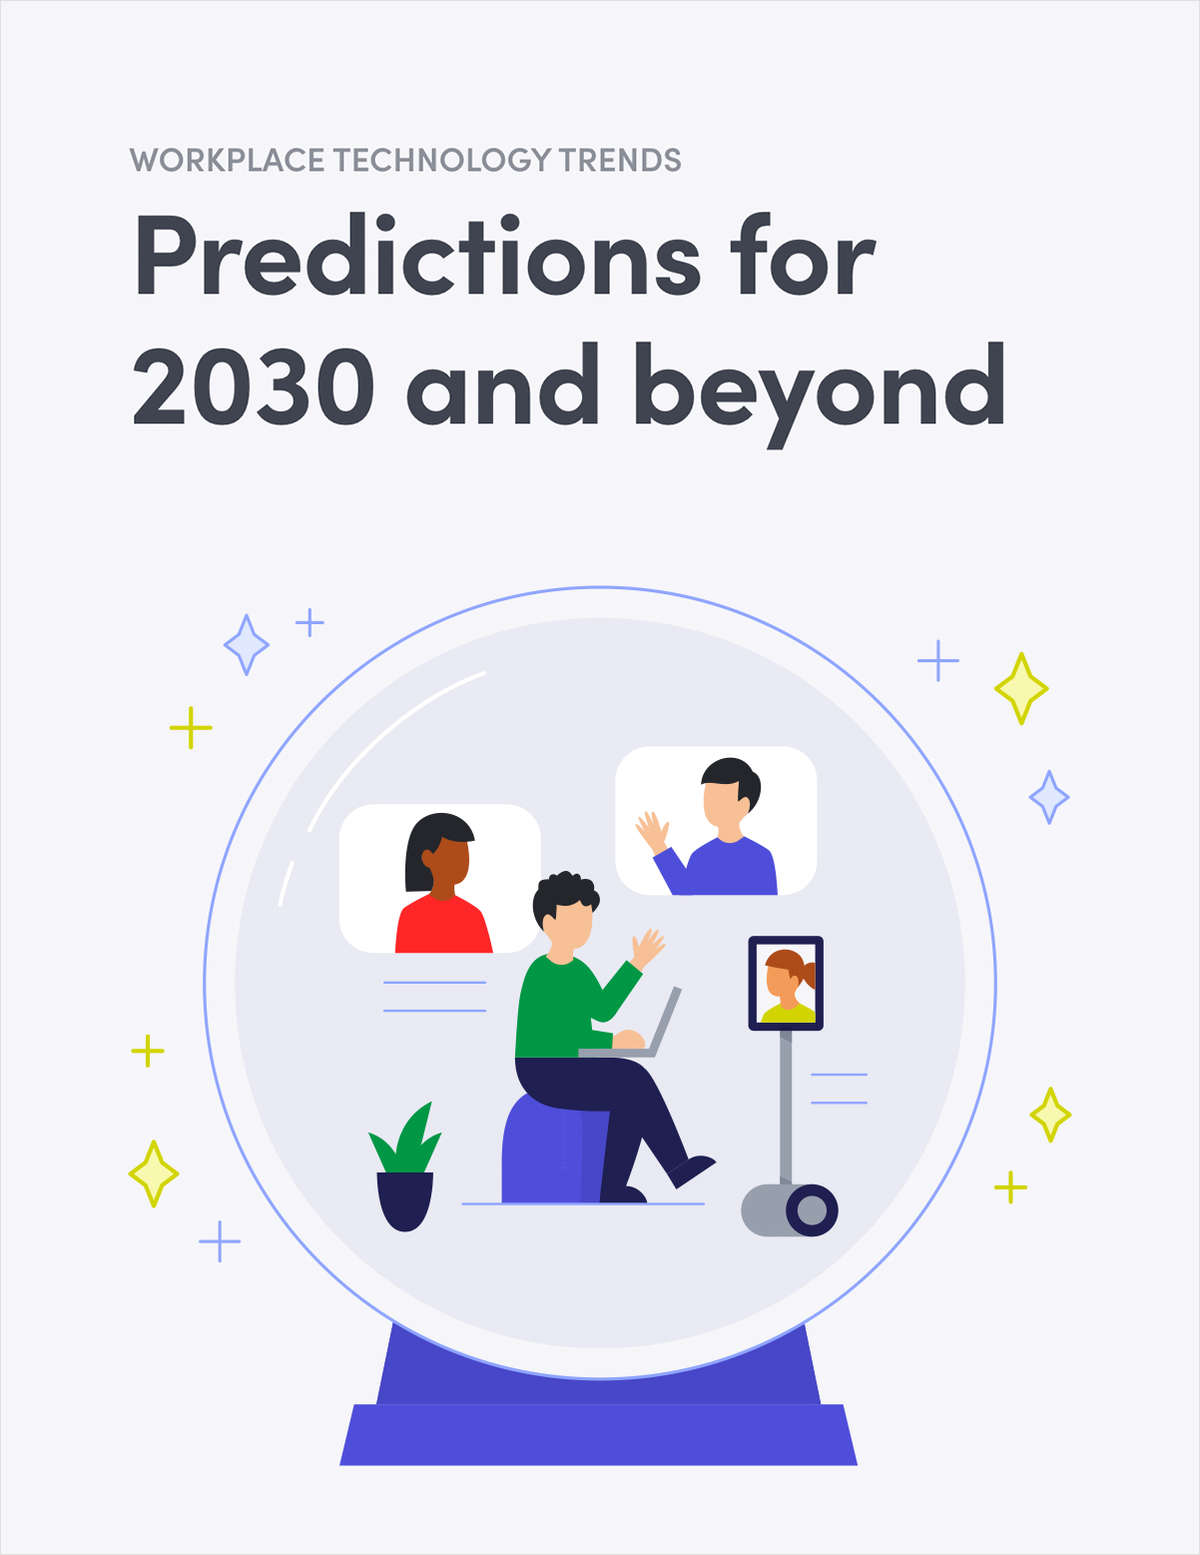 Workplace technology trends: Predictions for 2030 and beyond